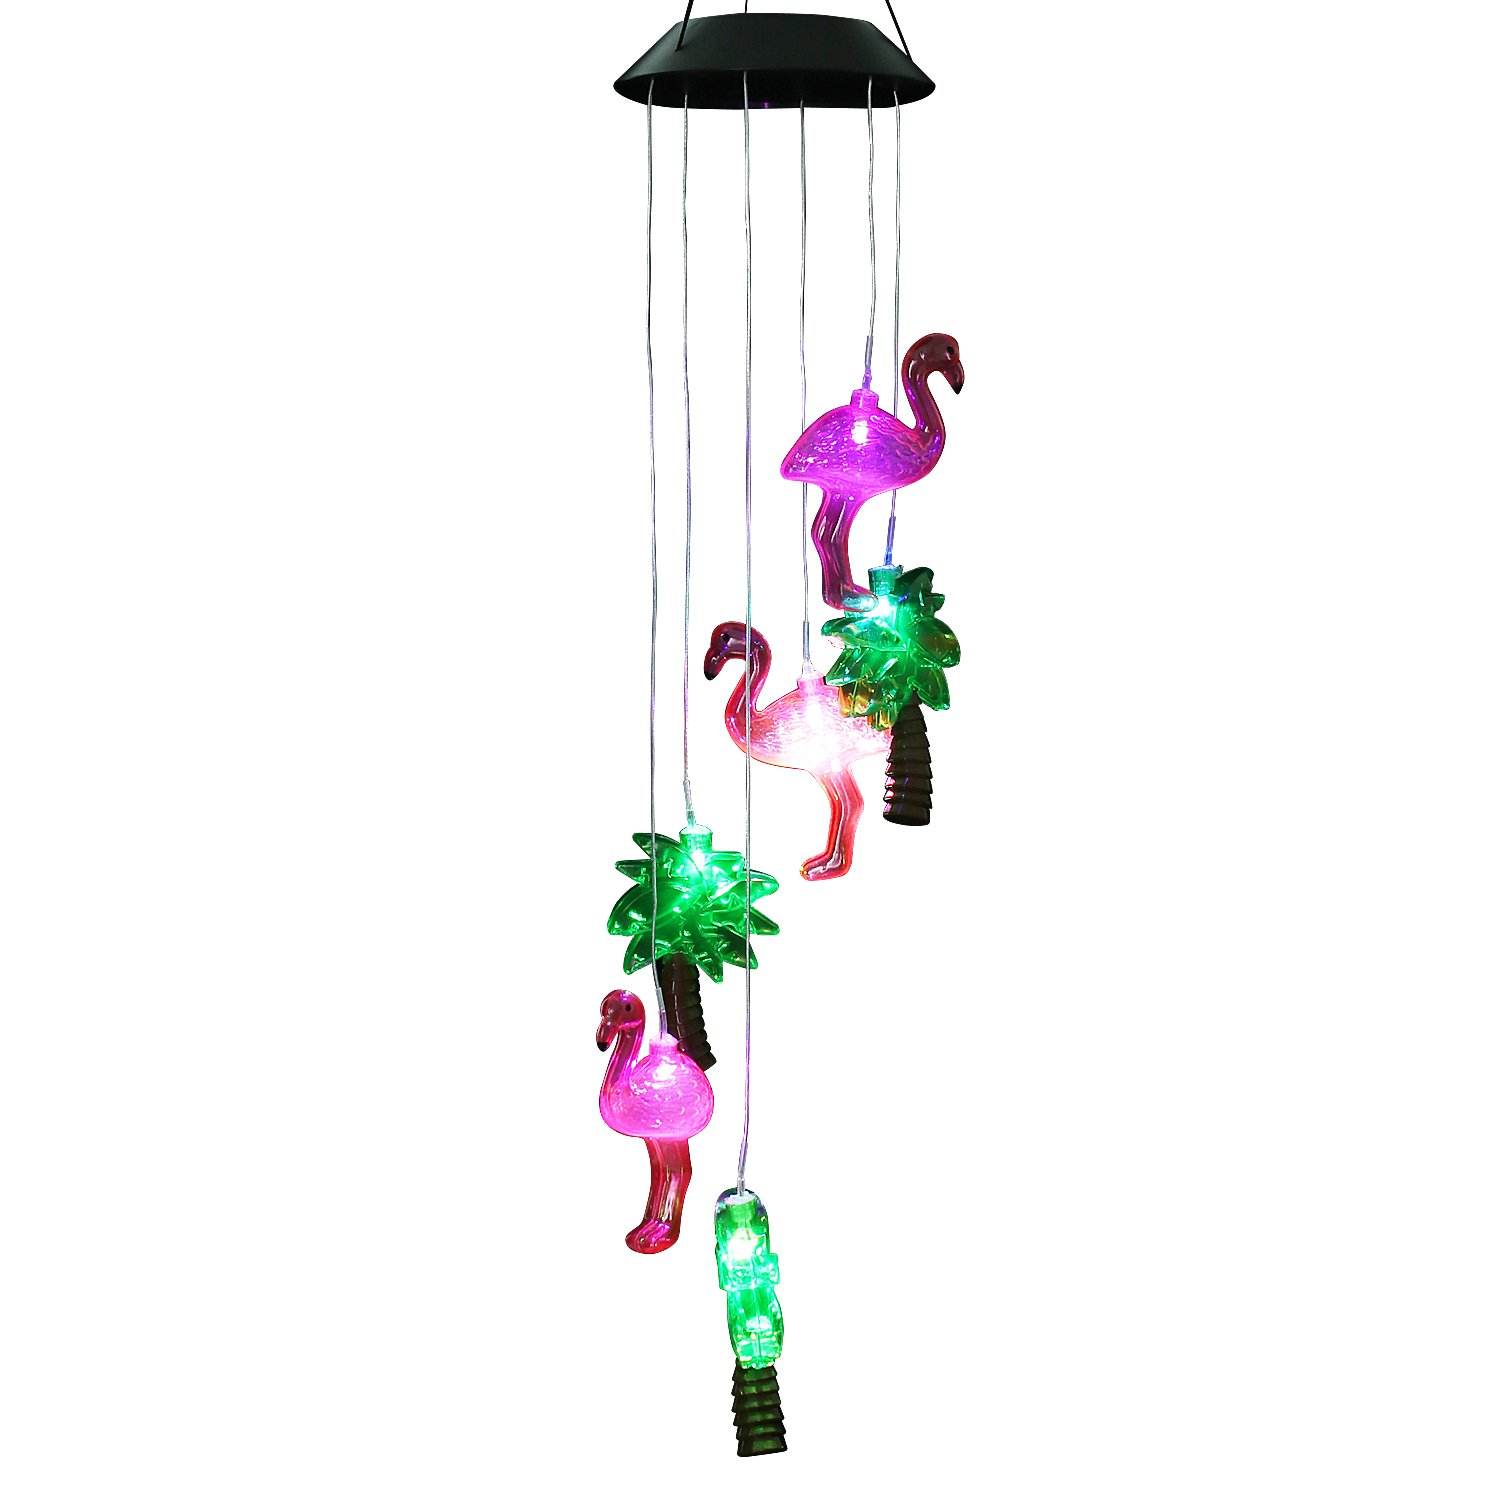 AceList Changing Color Solar Powered Flamingo Wind Moblie LED Light, Spiral Spinner Windchime Portable Outdoor Chime for Patio, Deck, Yard, Garden, Home, Pathway